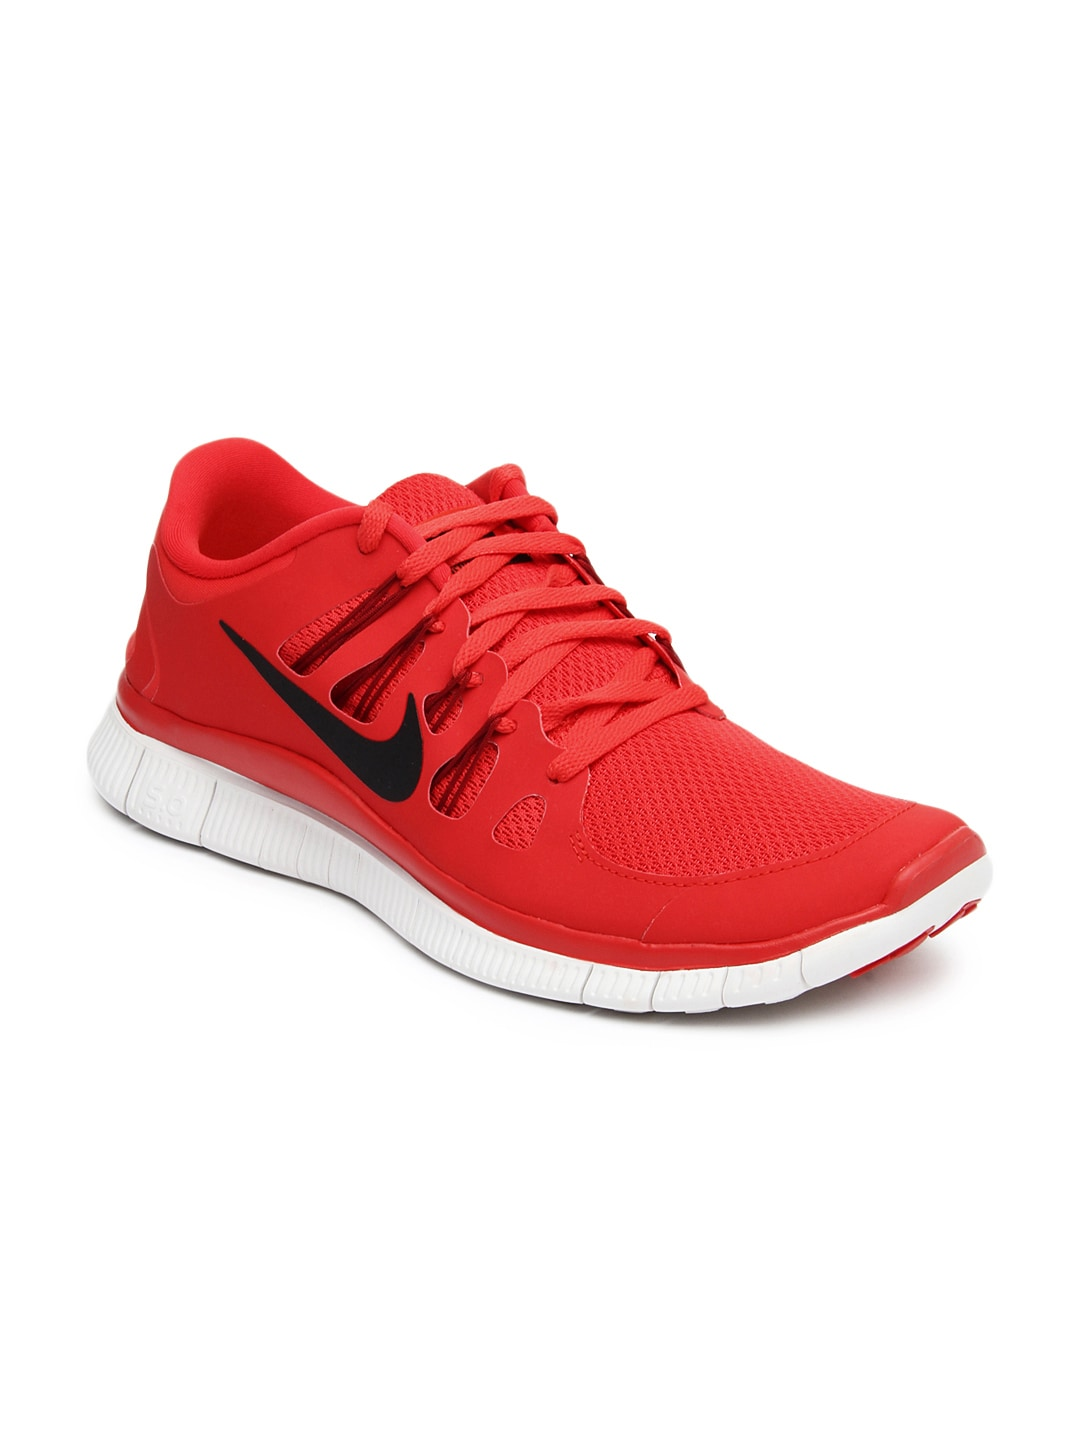 official photos 9e391 afacc Nike 579959-606 - Best Price in India | priceiq.in